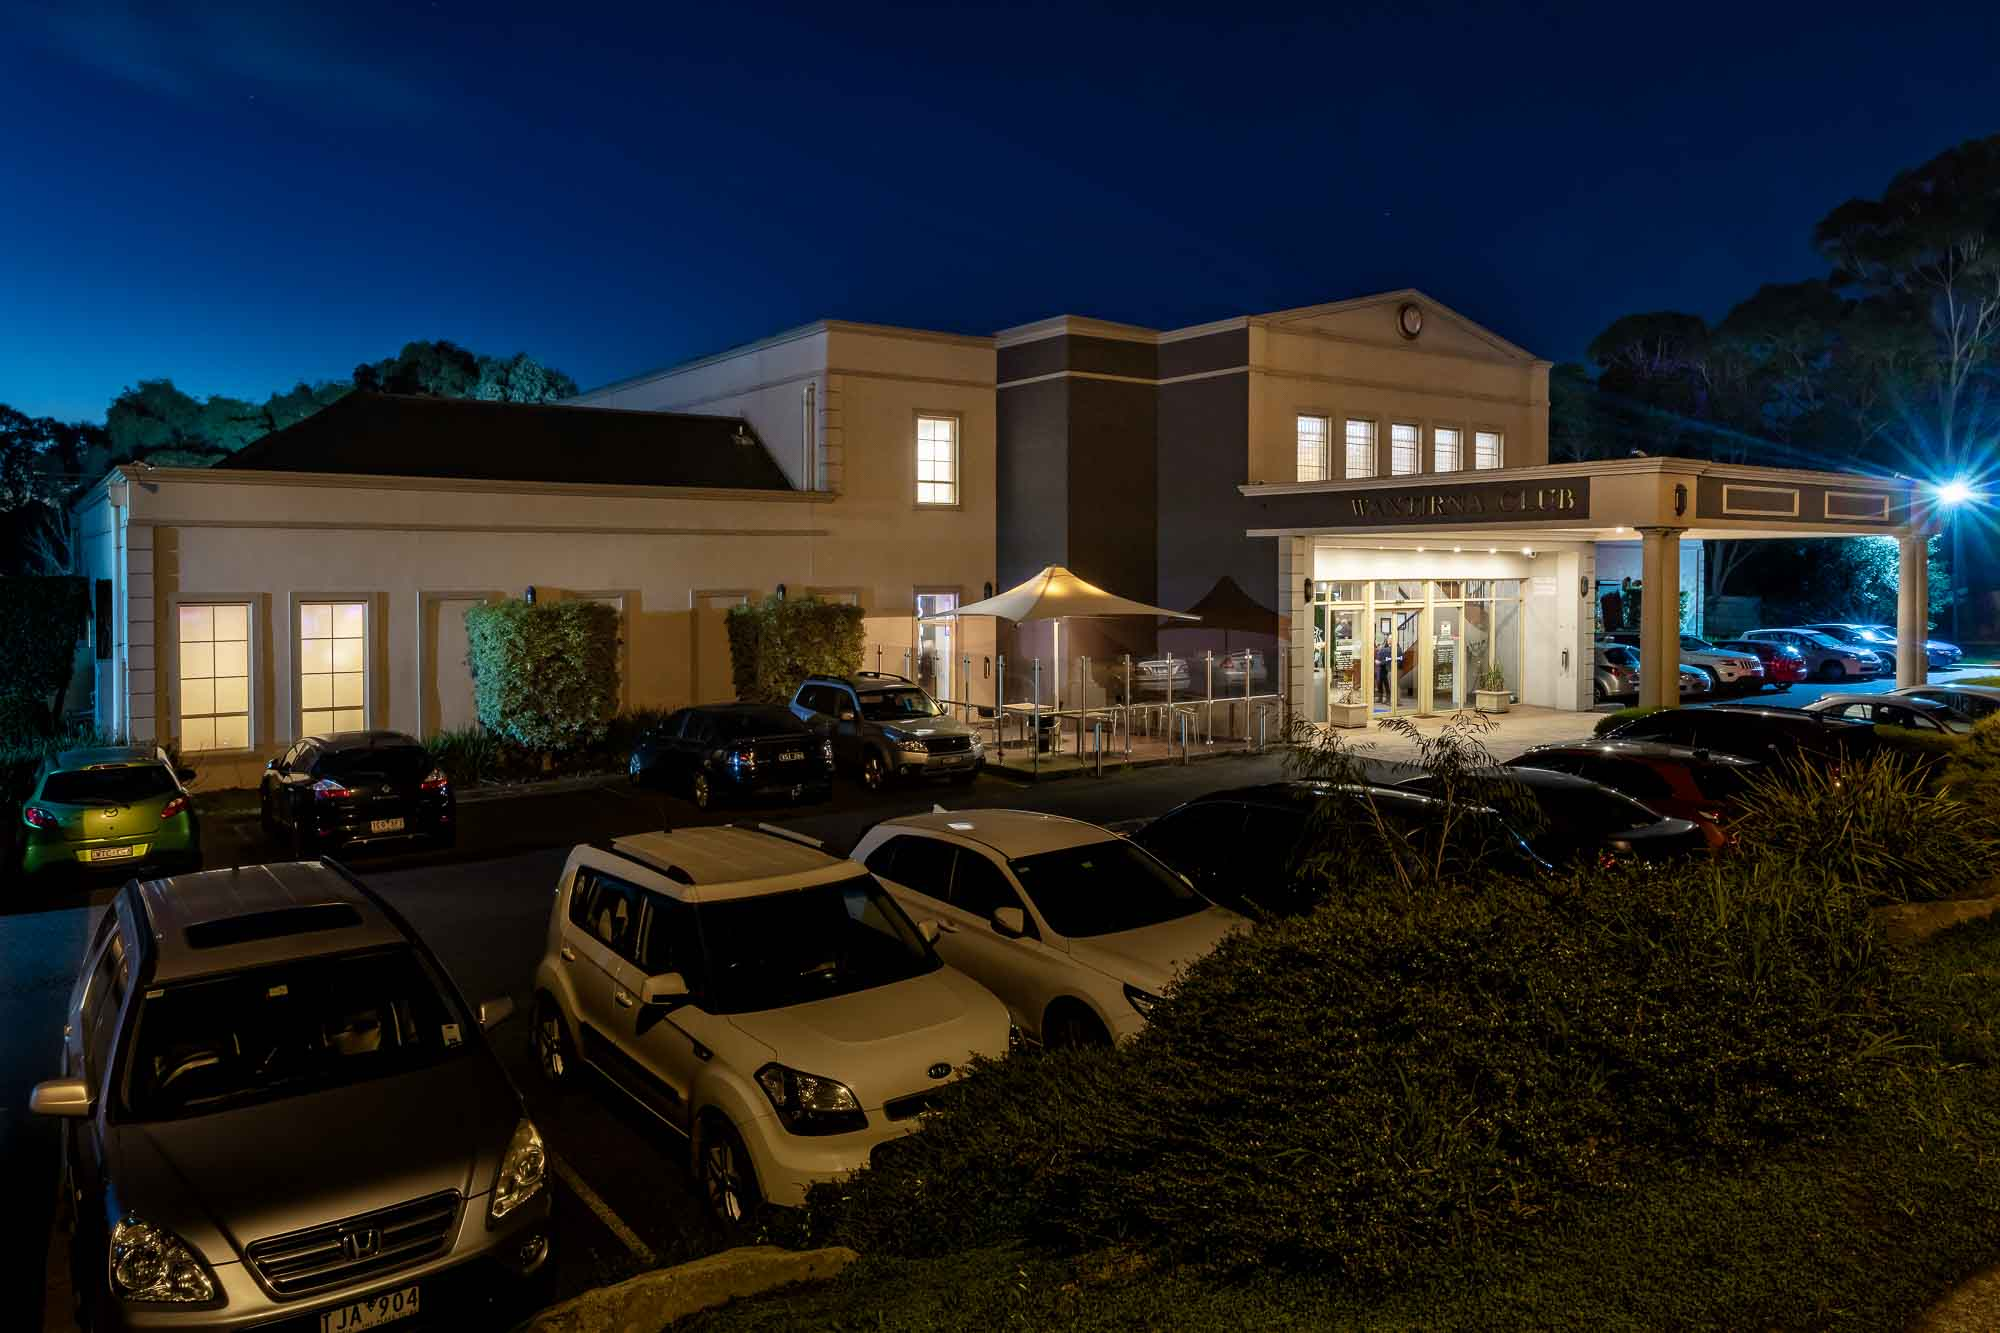 Commercial photography sample - Wantirna Club front of building left side night